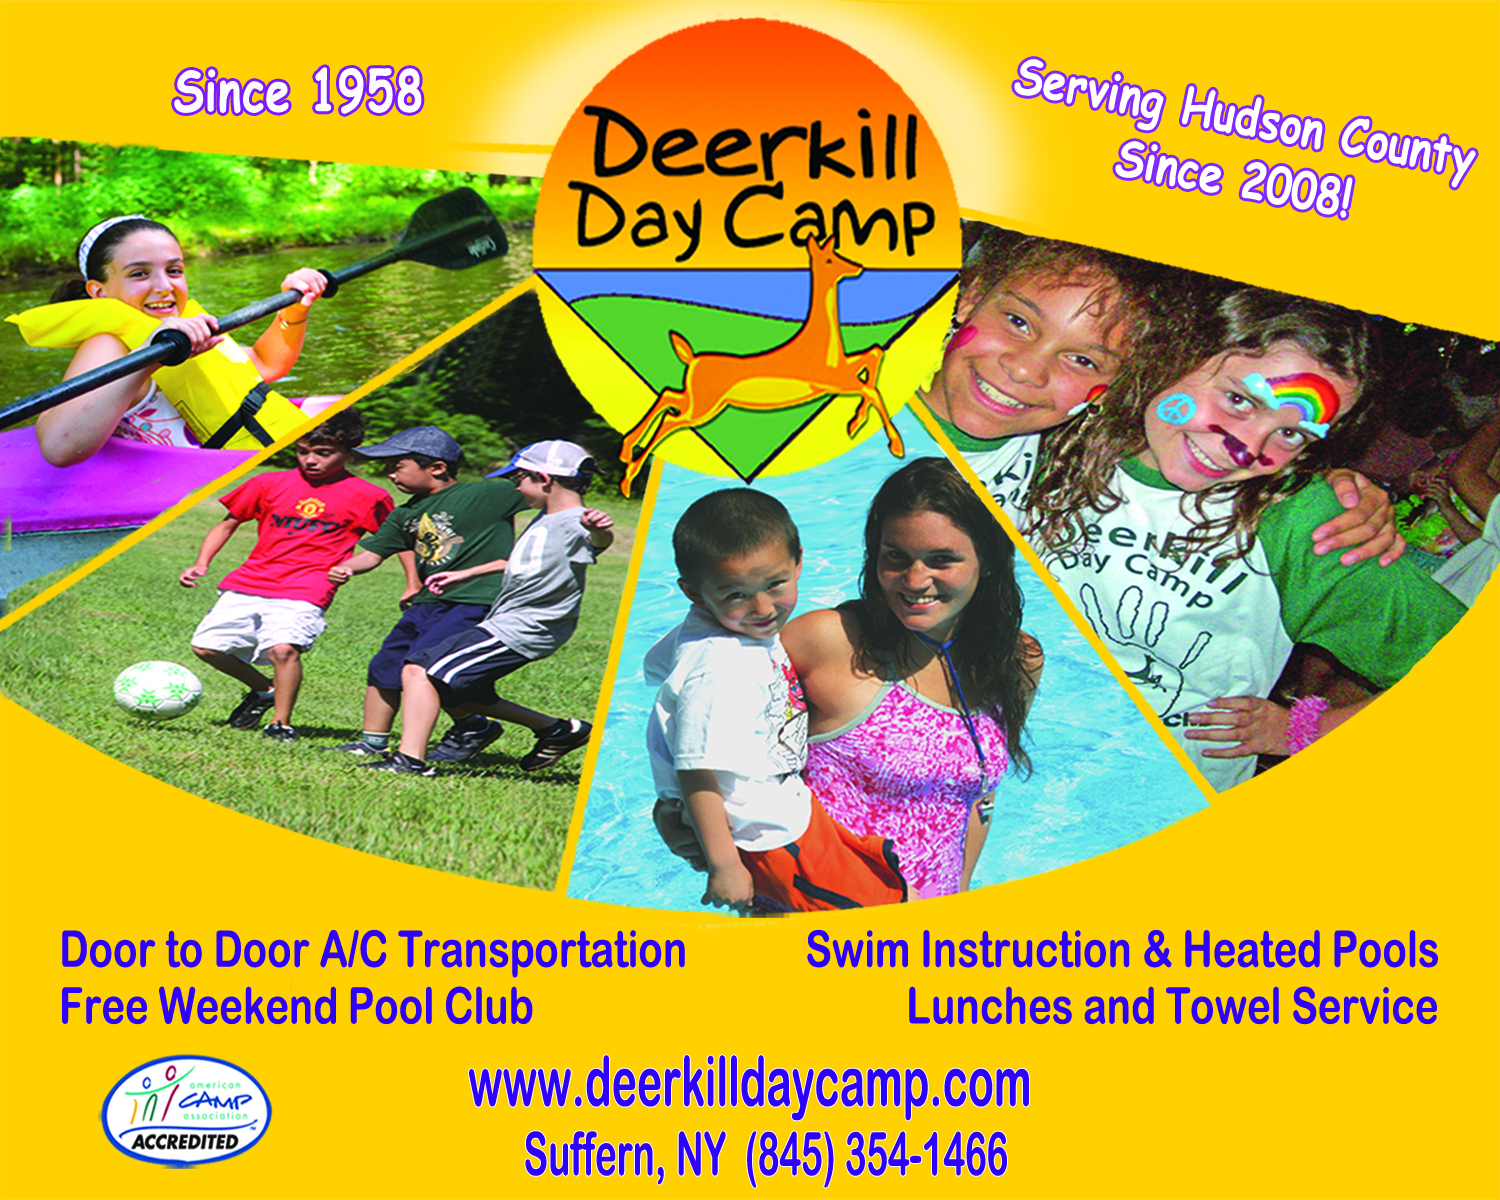 Deerkill is a premier summer day camp for boys and girls